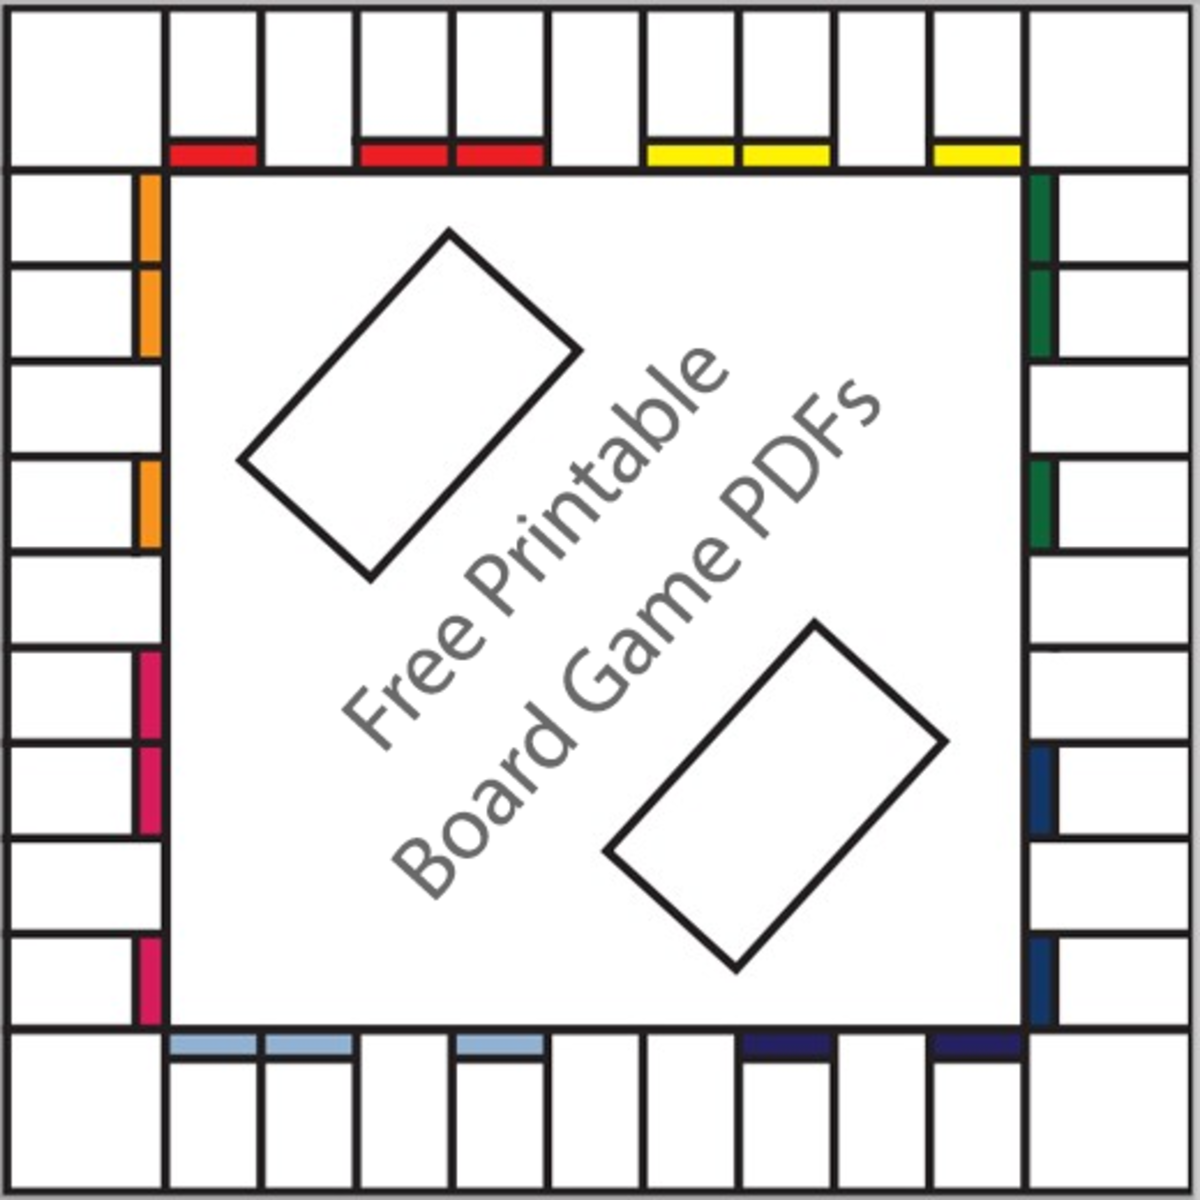 16 free printable board game templates hubpages for Game maker templates download